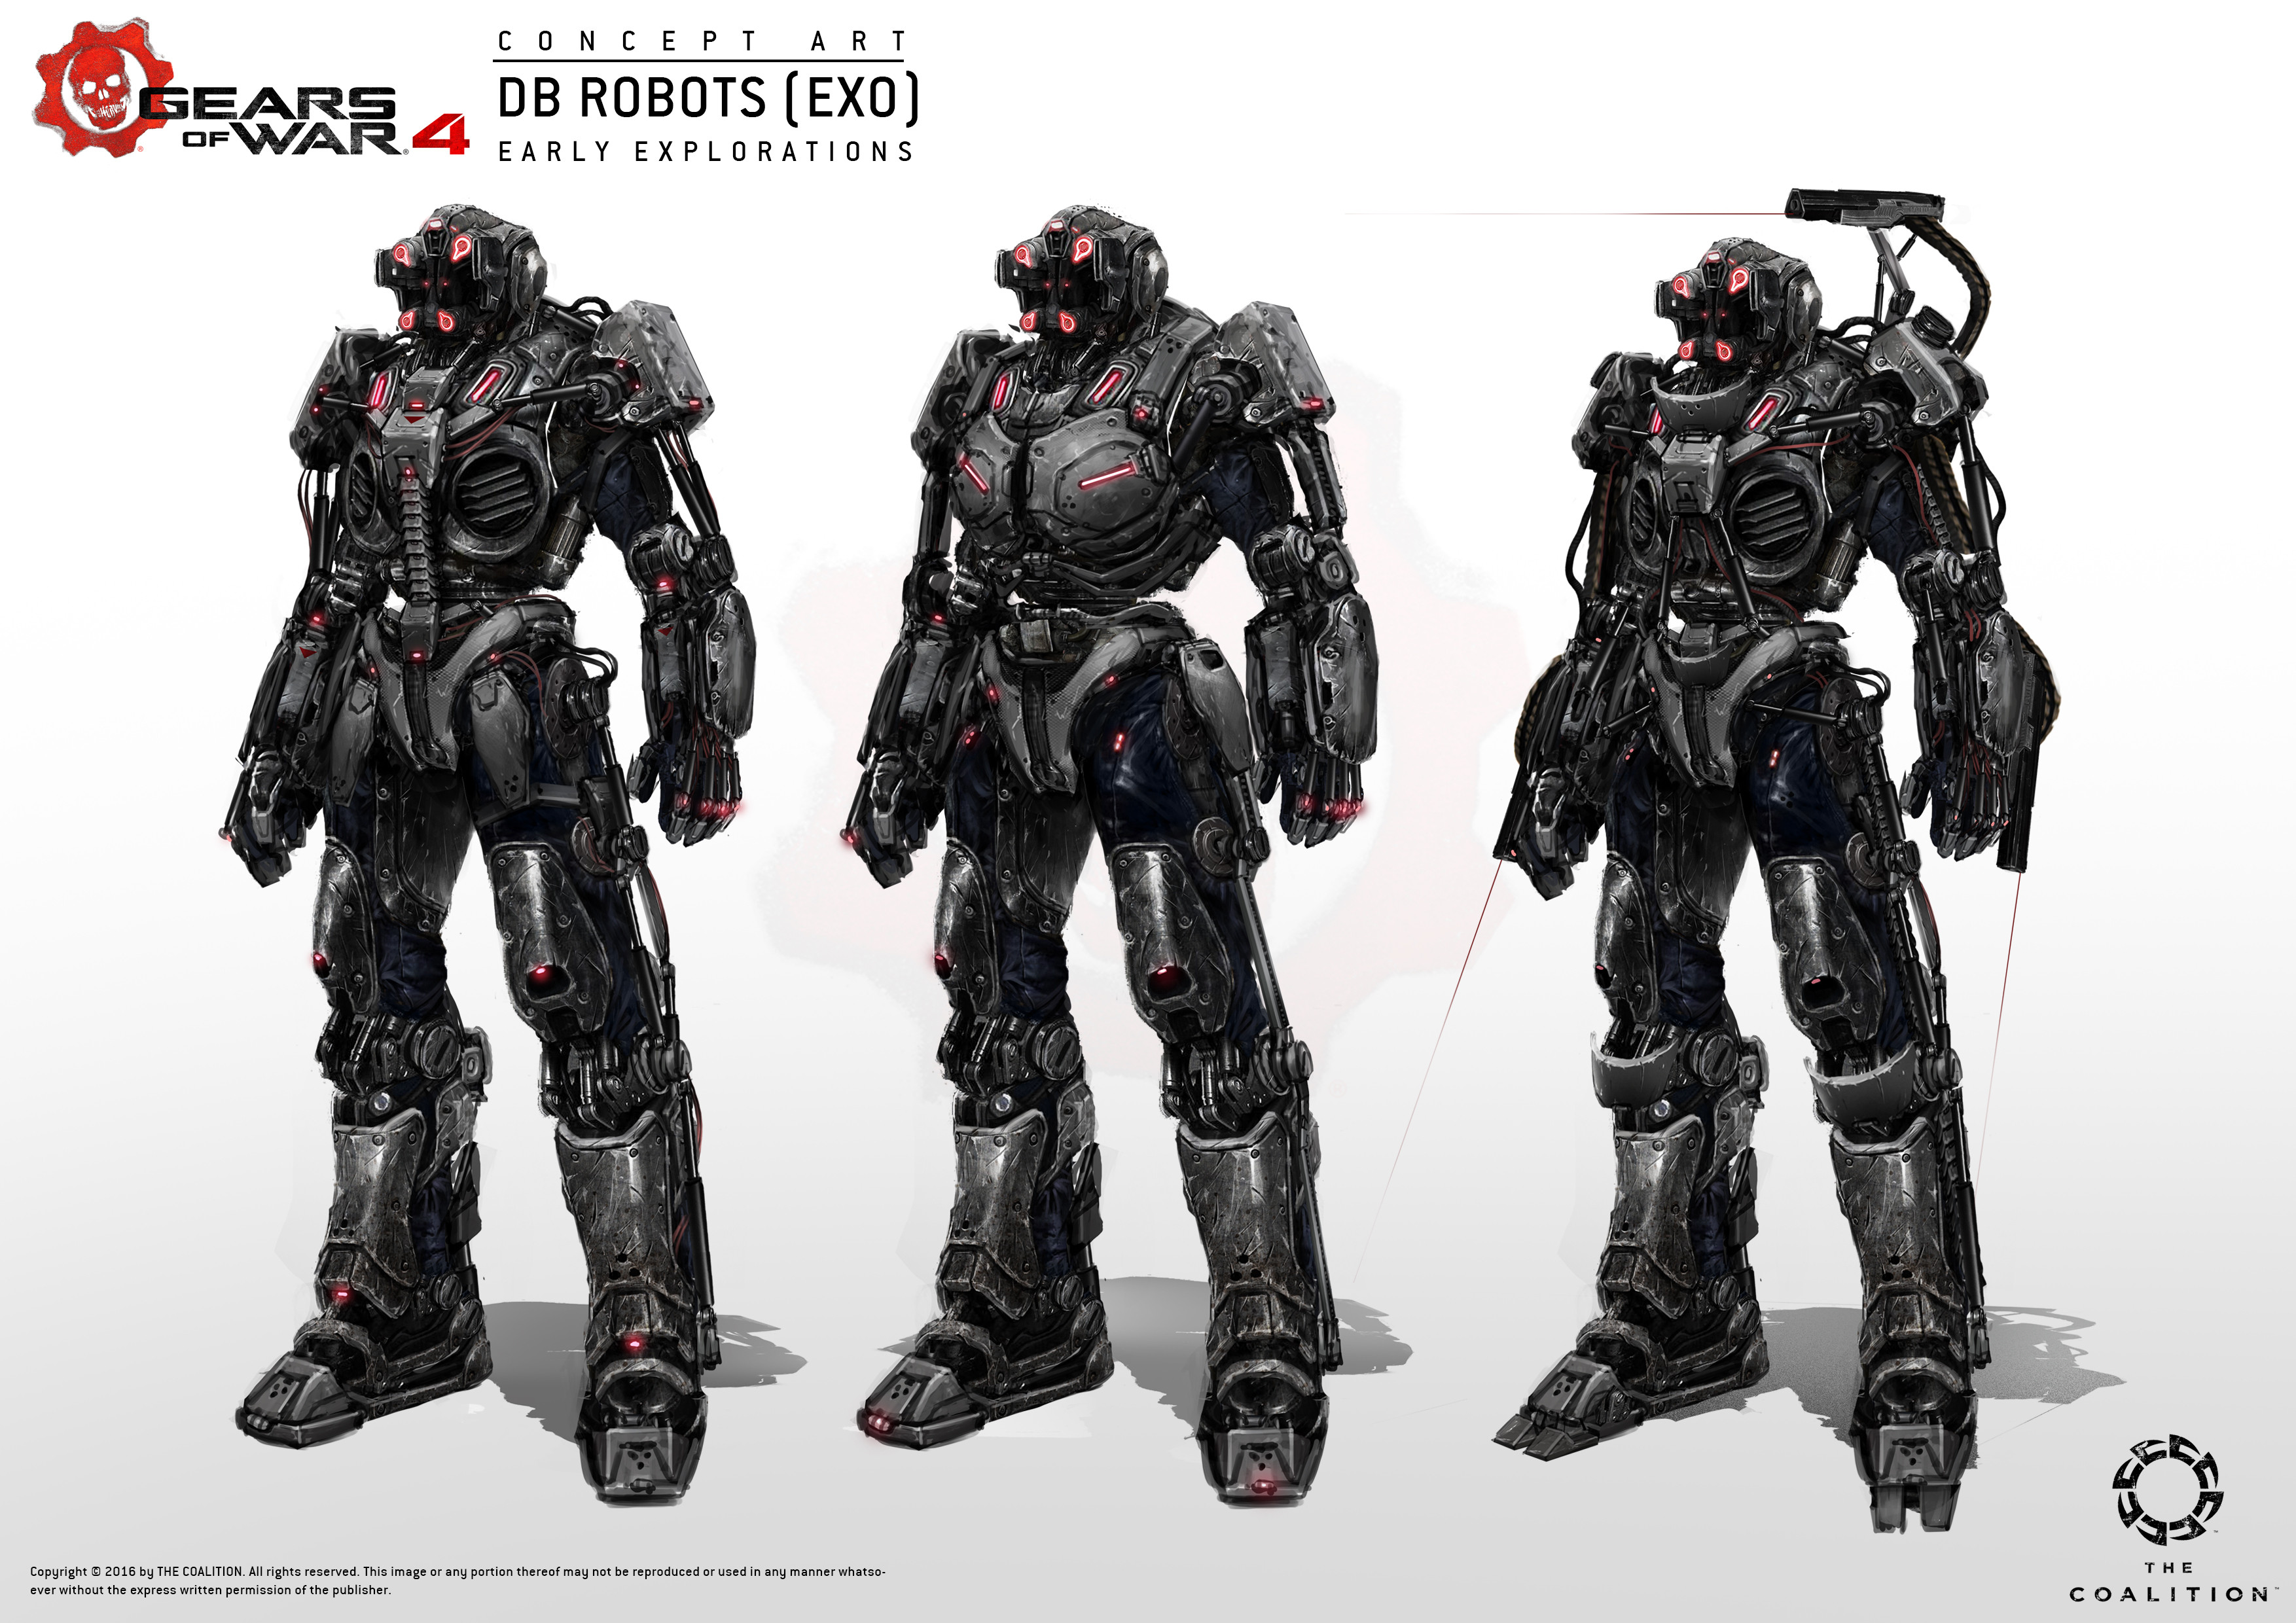 Early explorations of the exo suit. I still remember at one point I proposed that players would be able to rip off the exos from the robots, then put them on for extra devastation haha